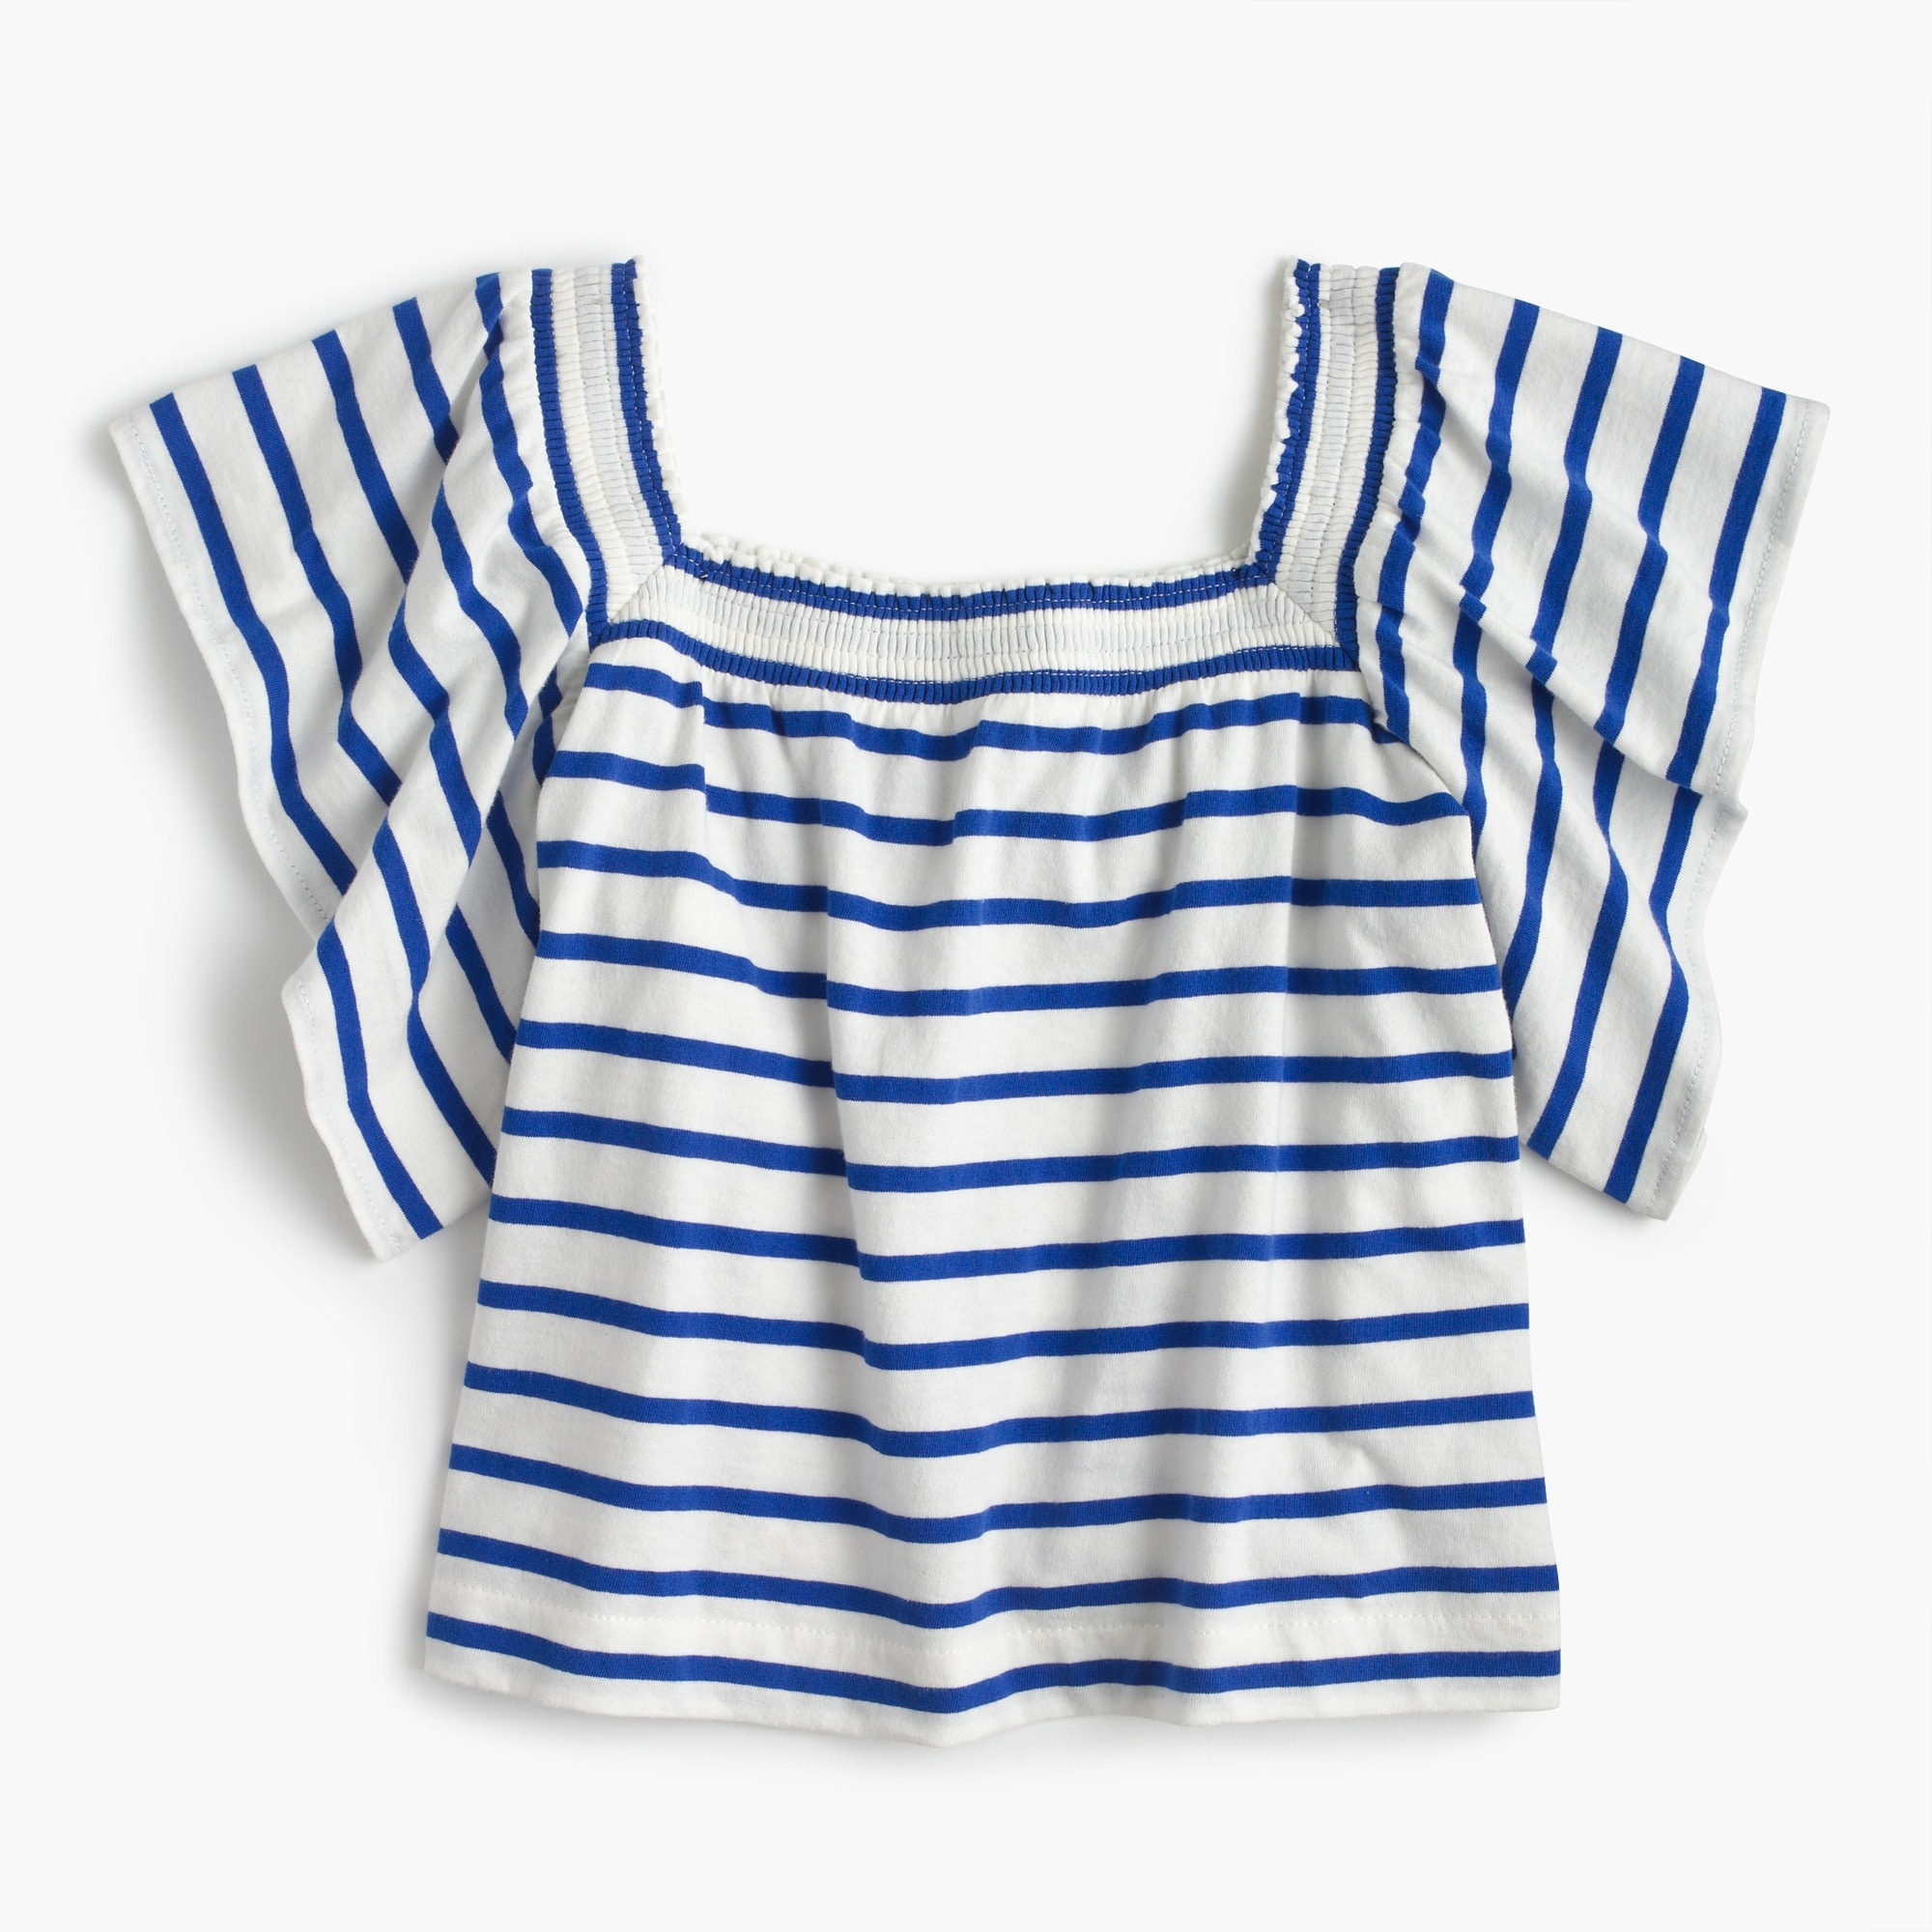 girls' two-way striped top : girl short-sleeve t-shirts